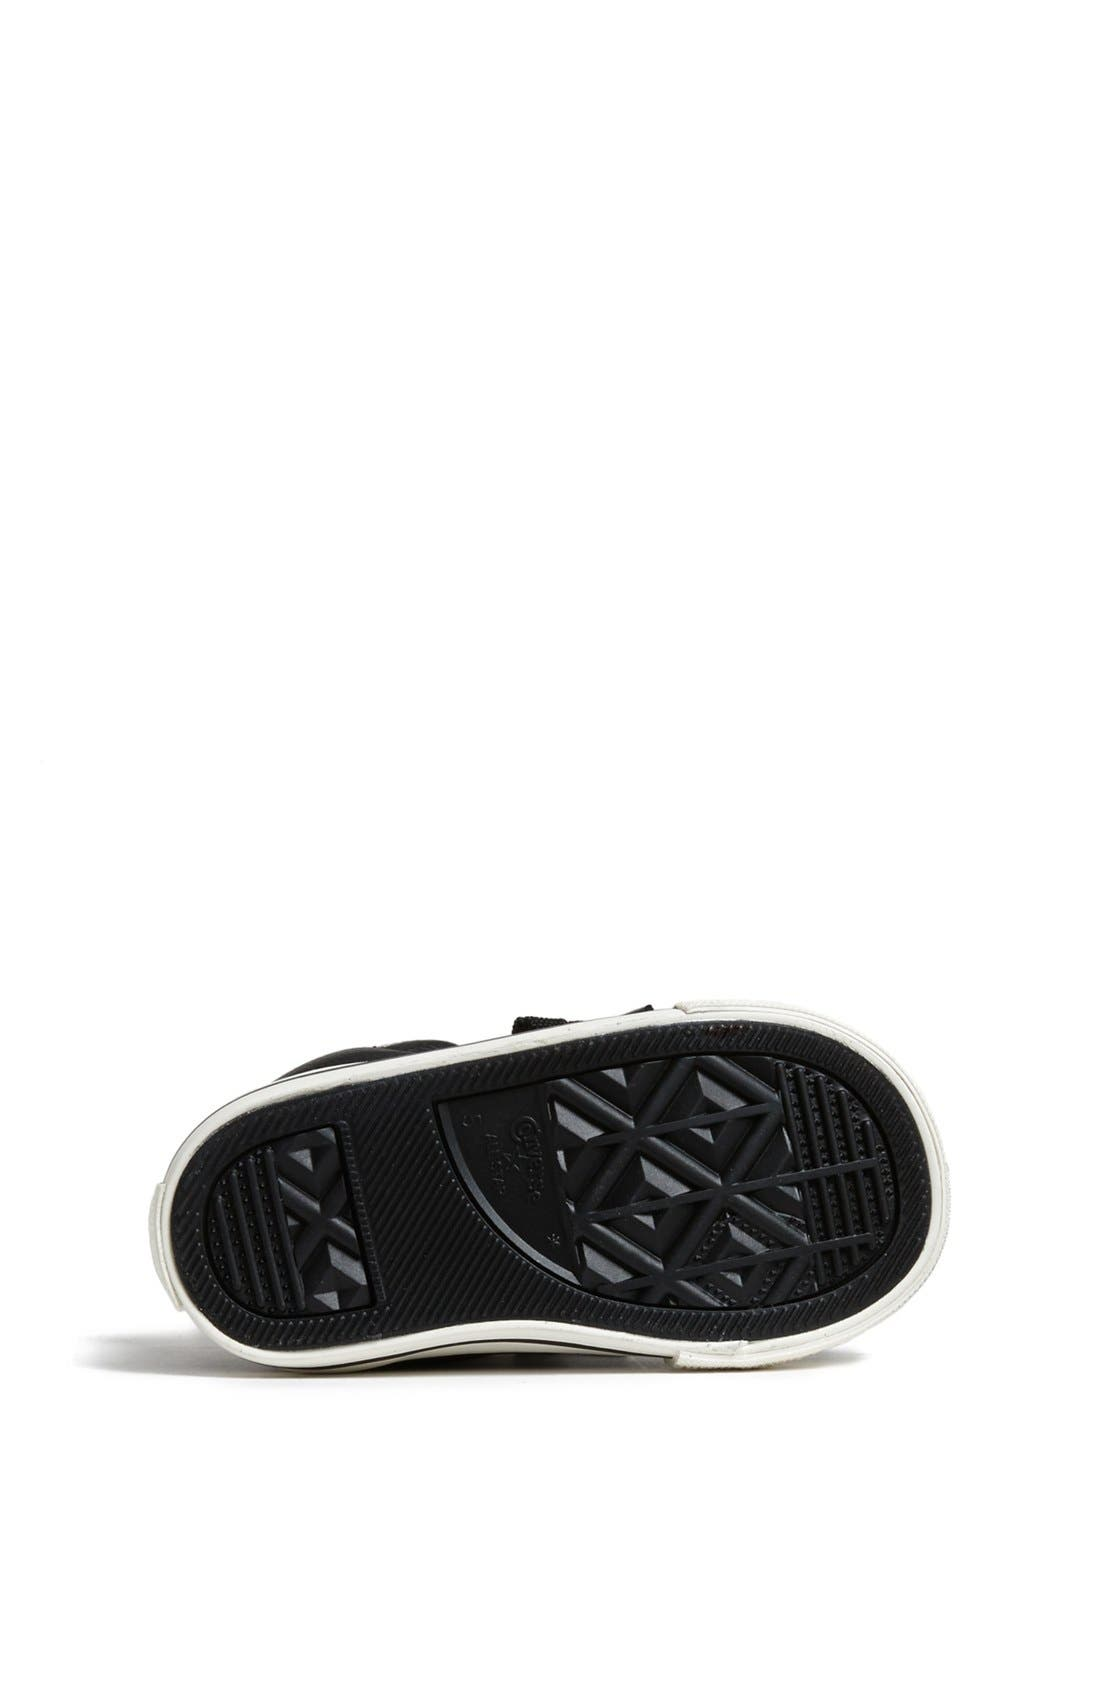 Chuck Taylor<sup>®</sup> All Star<sup>®</sup> 'CT AS Street' Leather Slip-On Sneaker,                             Alternate thumbnail 4, color,                             001